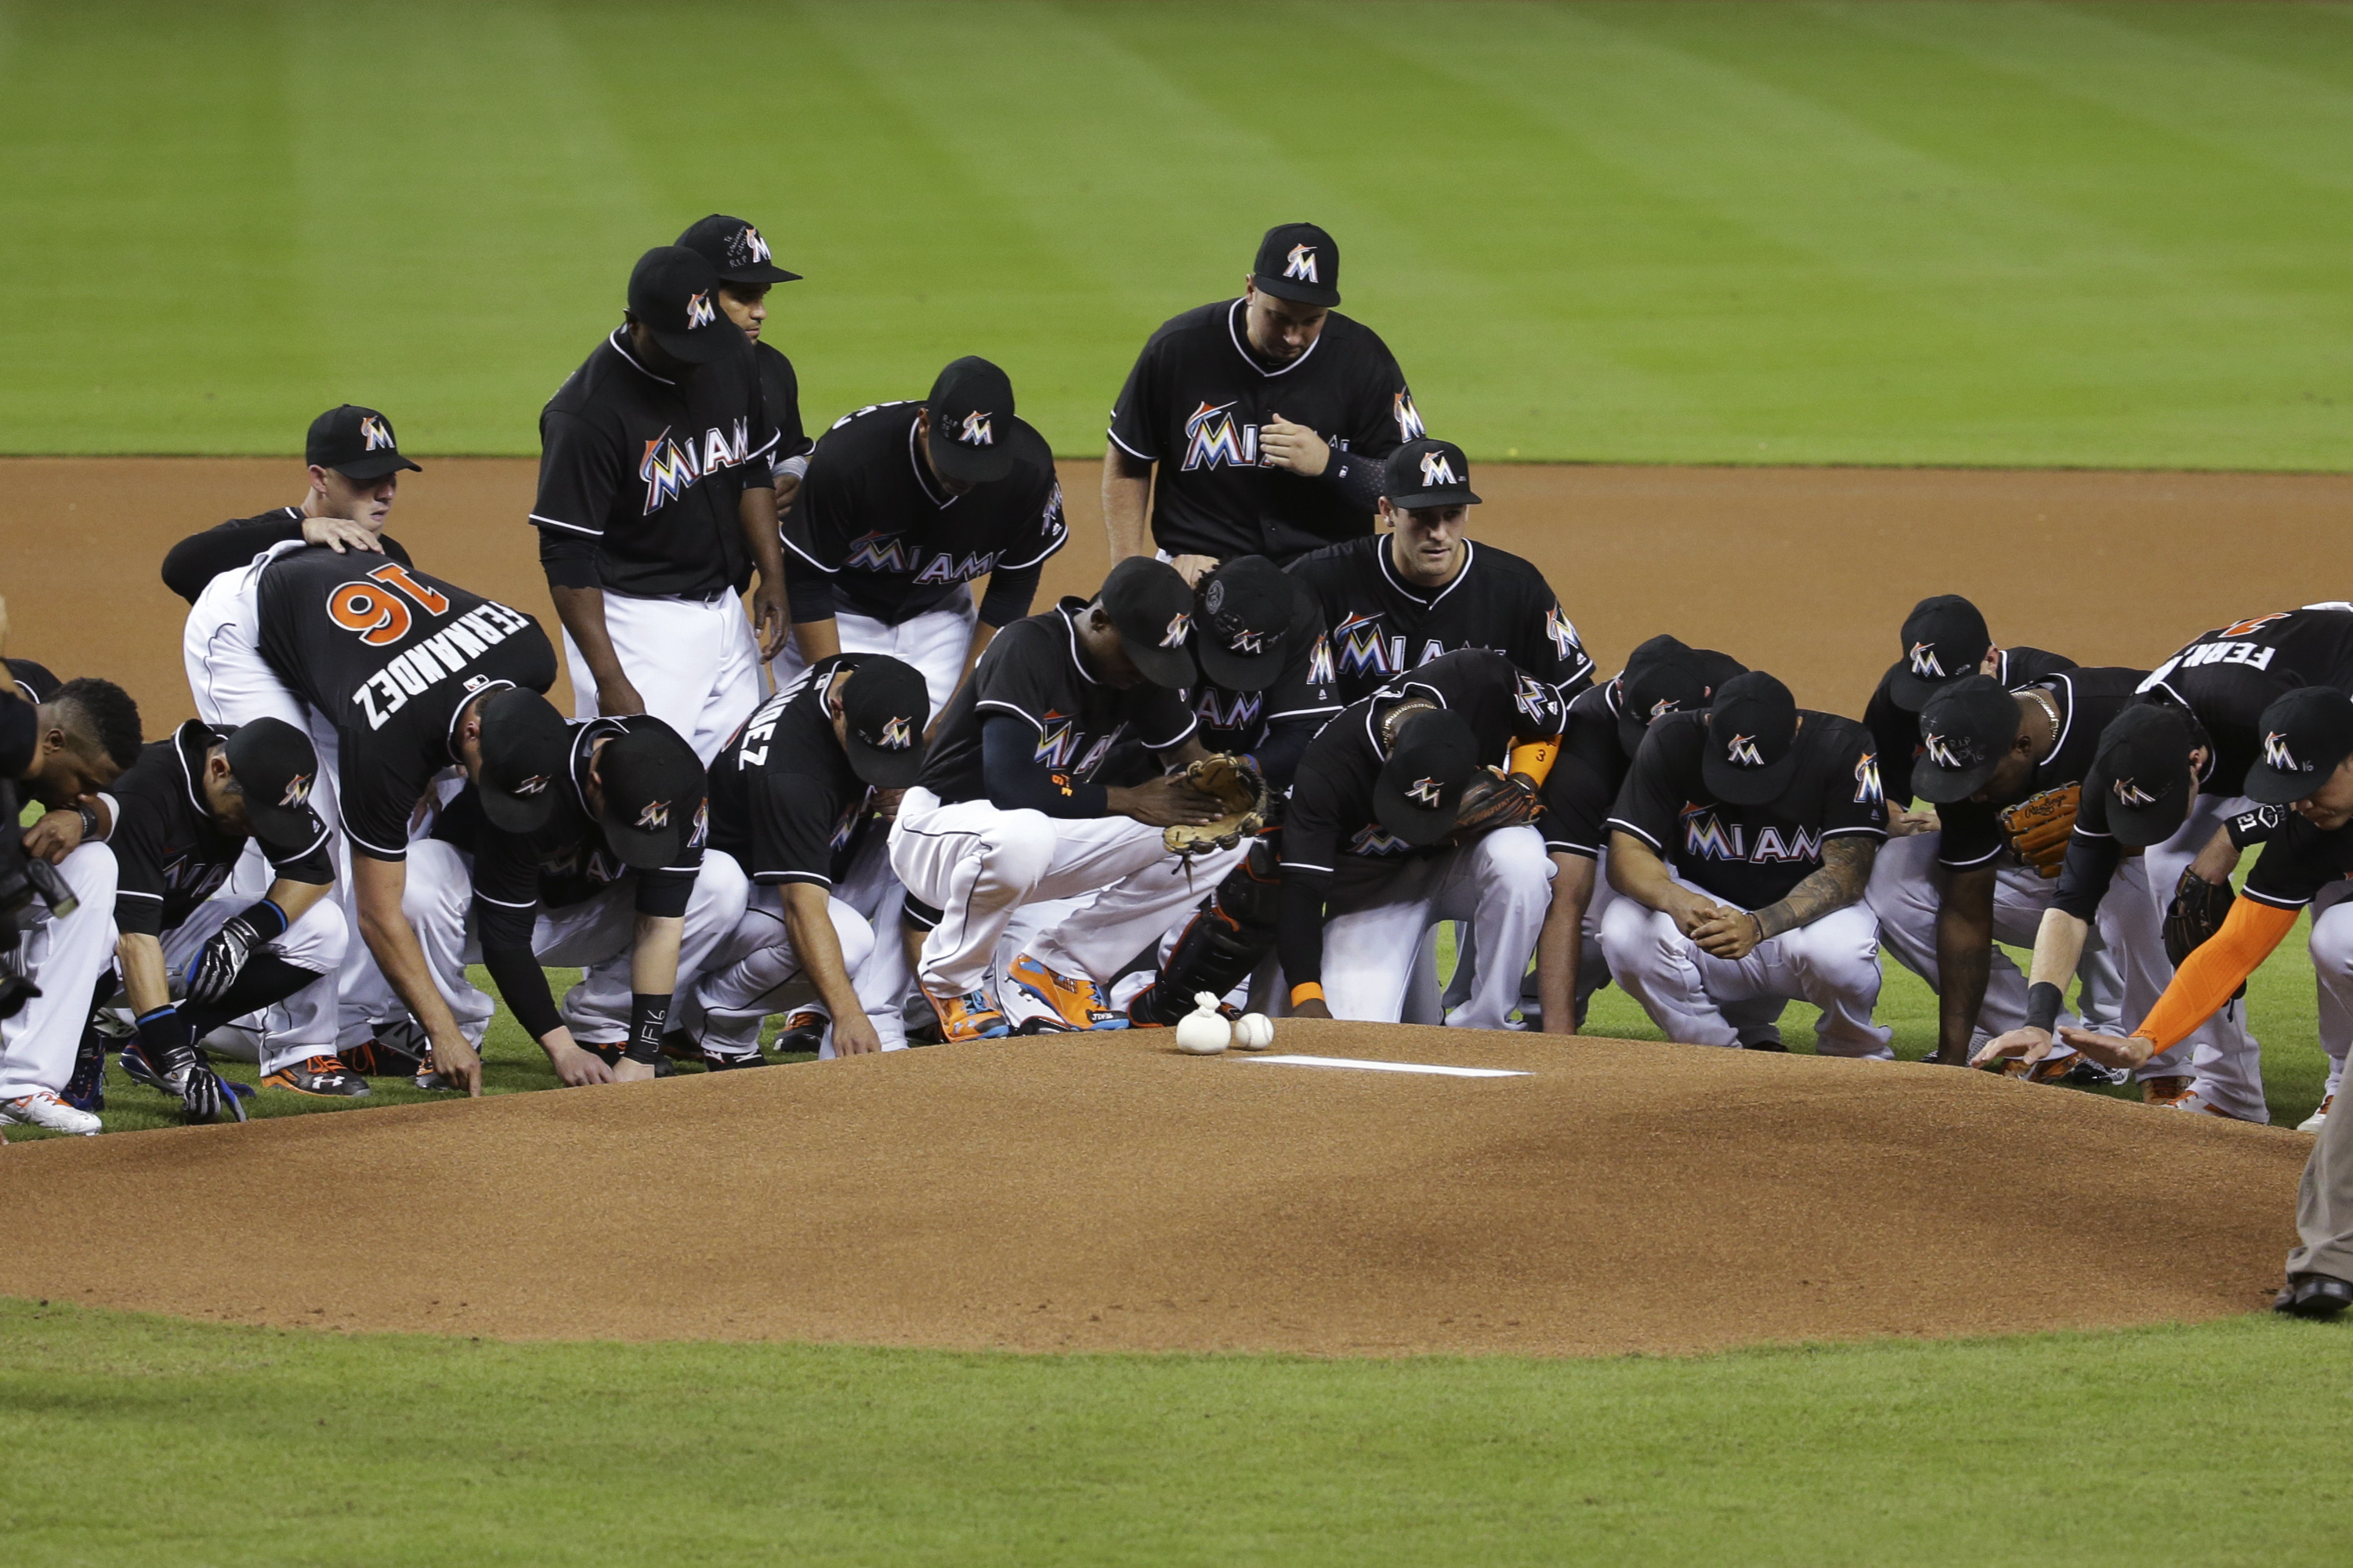 Miami Marlins players wearing a jersey in honor of pitcher Jose Fernandez (16) gather around the pitching mound before a baseball game against the New York Mets, Monday, Sept. 26, 2016, in Miami. Fernandez died in a boating accident Sunday. (AP Photo/Lynn